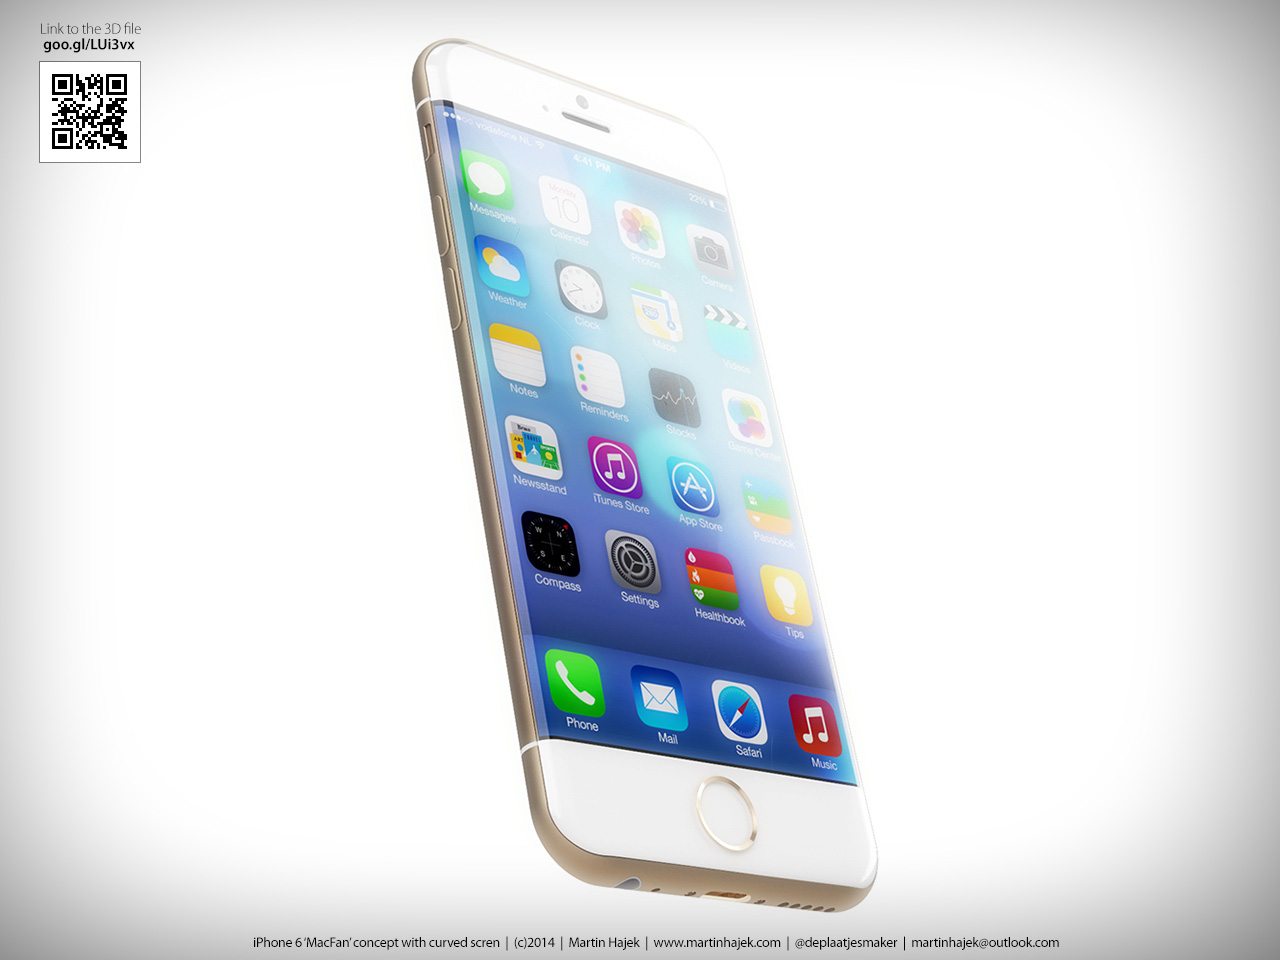 iPhone-6-curved-display1